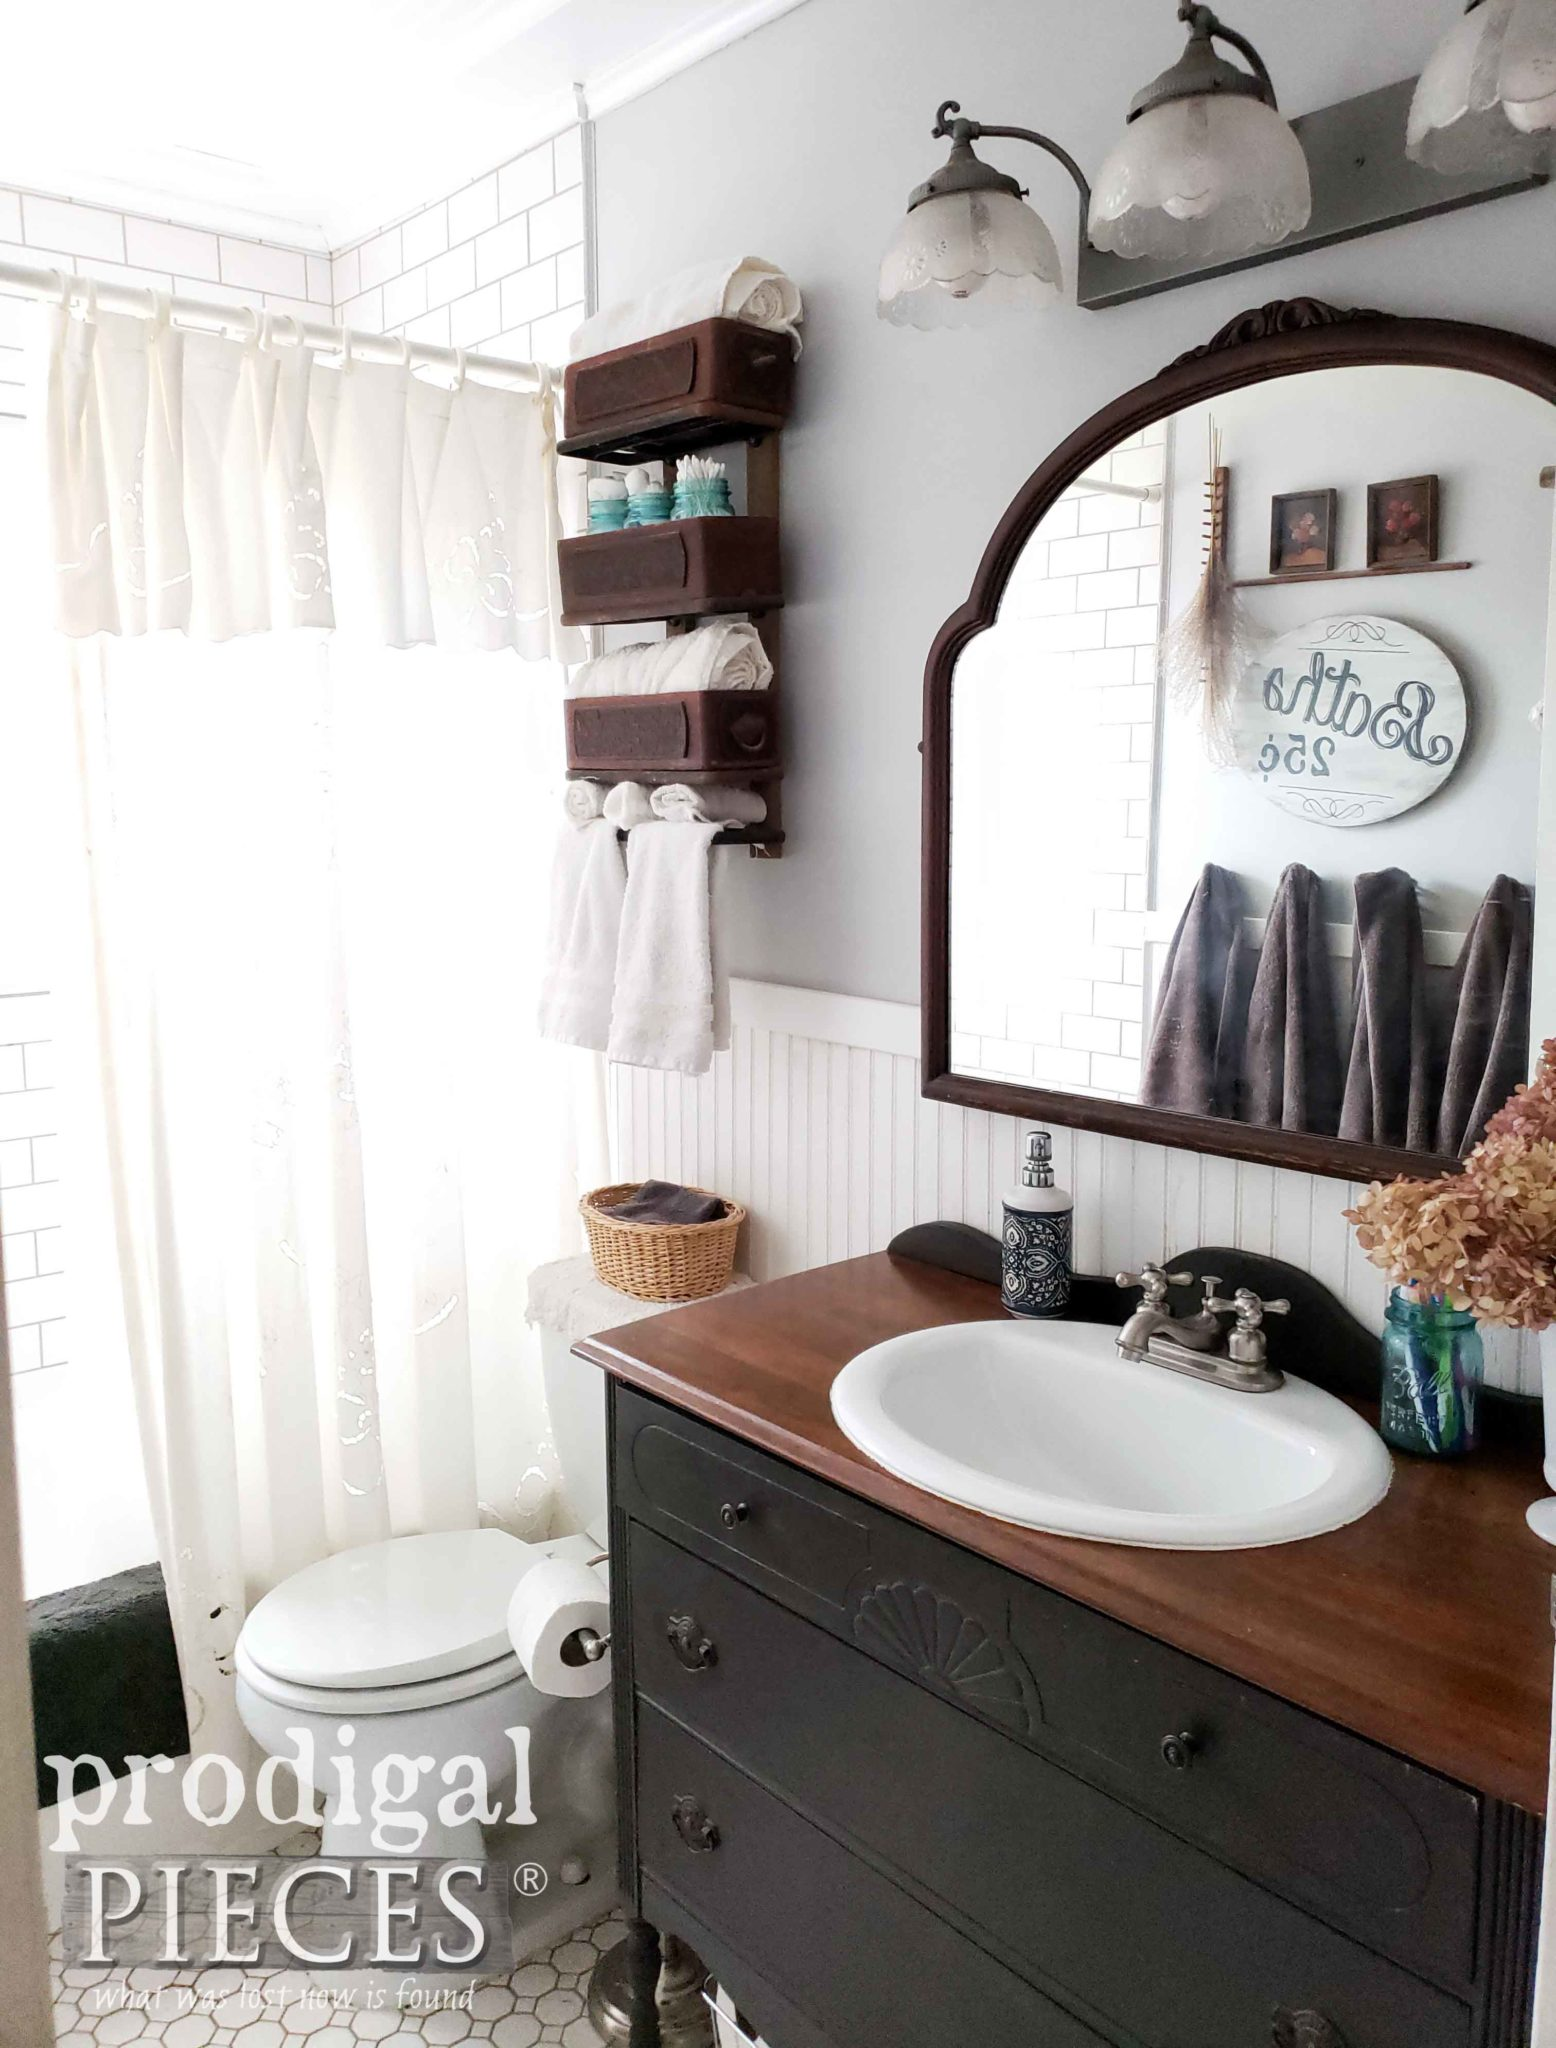 Farmhouse Style Bathroom with Dresser Vanity by Prodigal Pieces | prodigalpieces.com